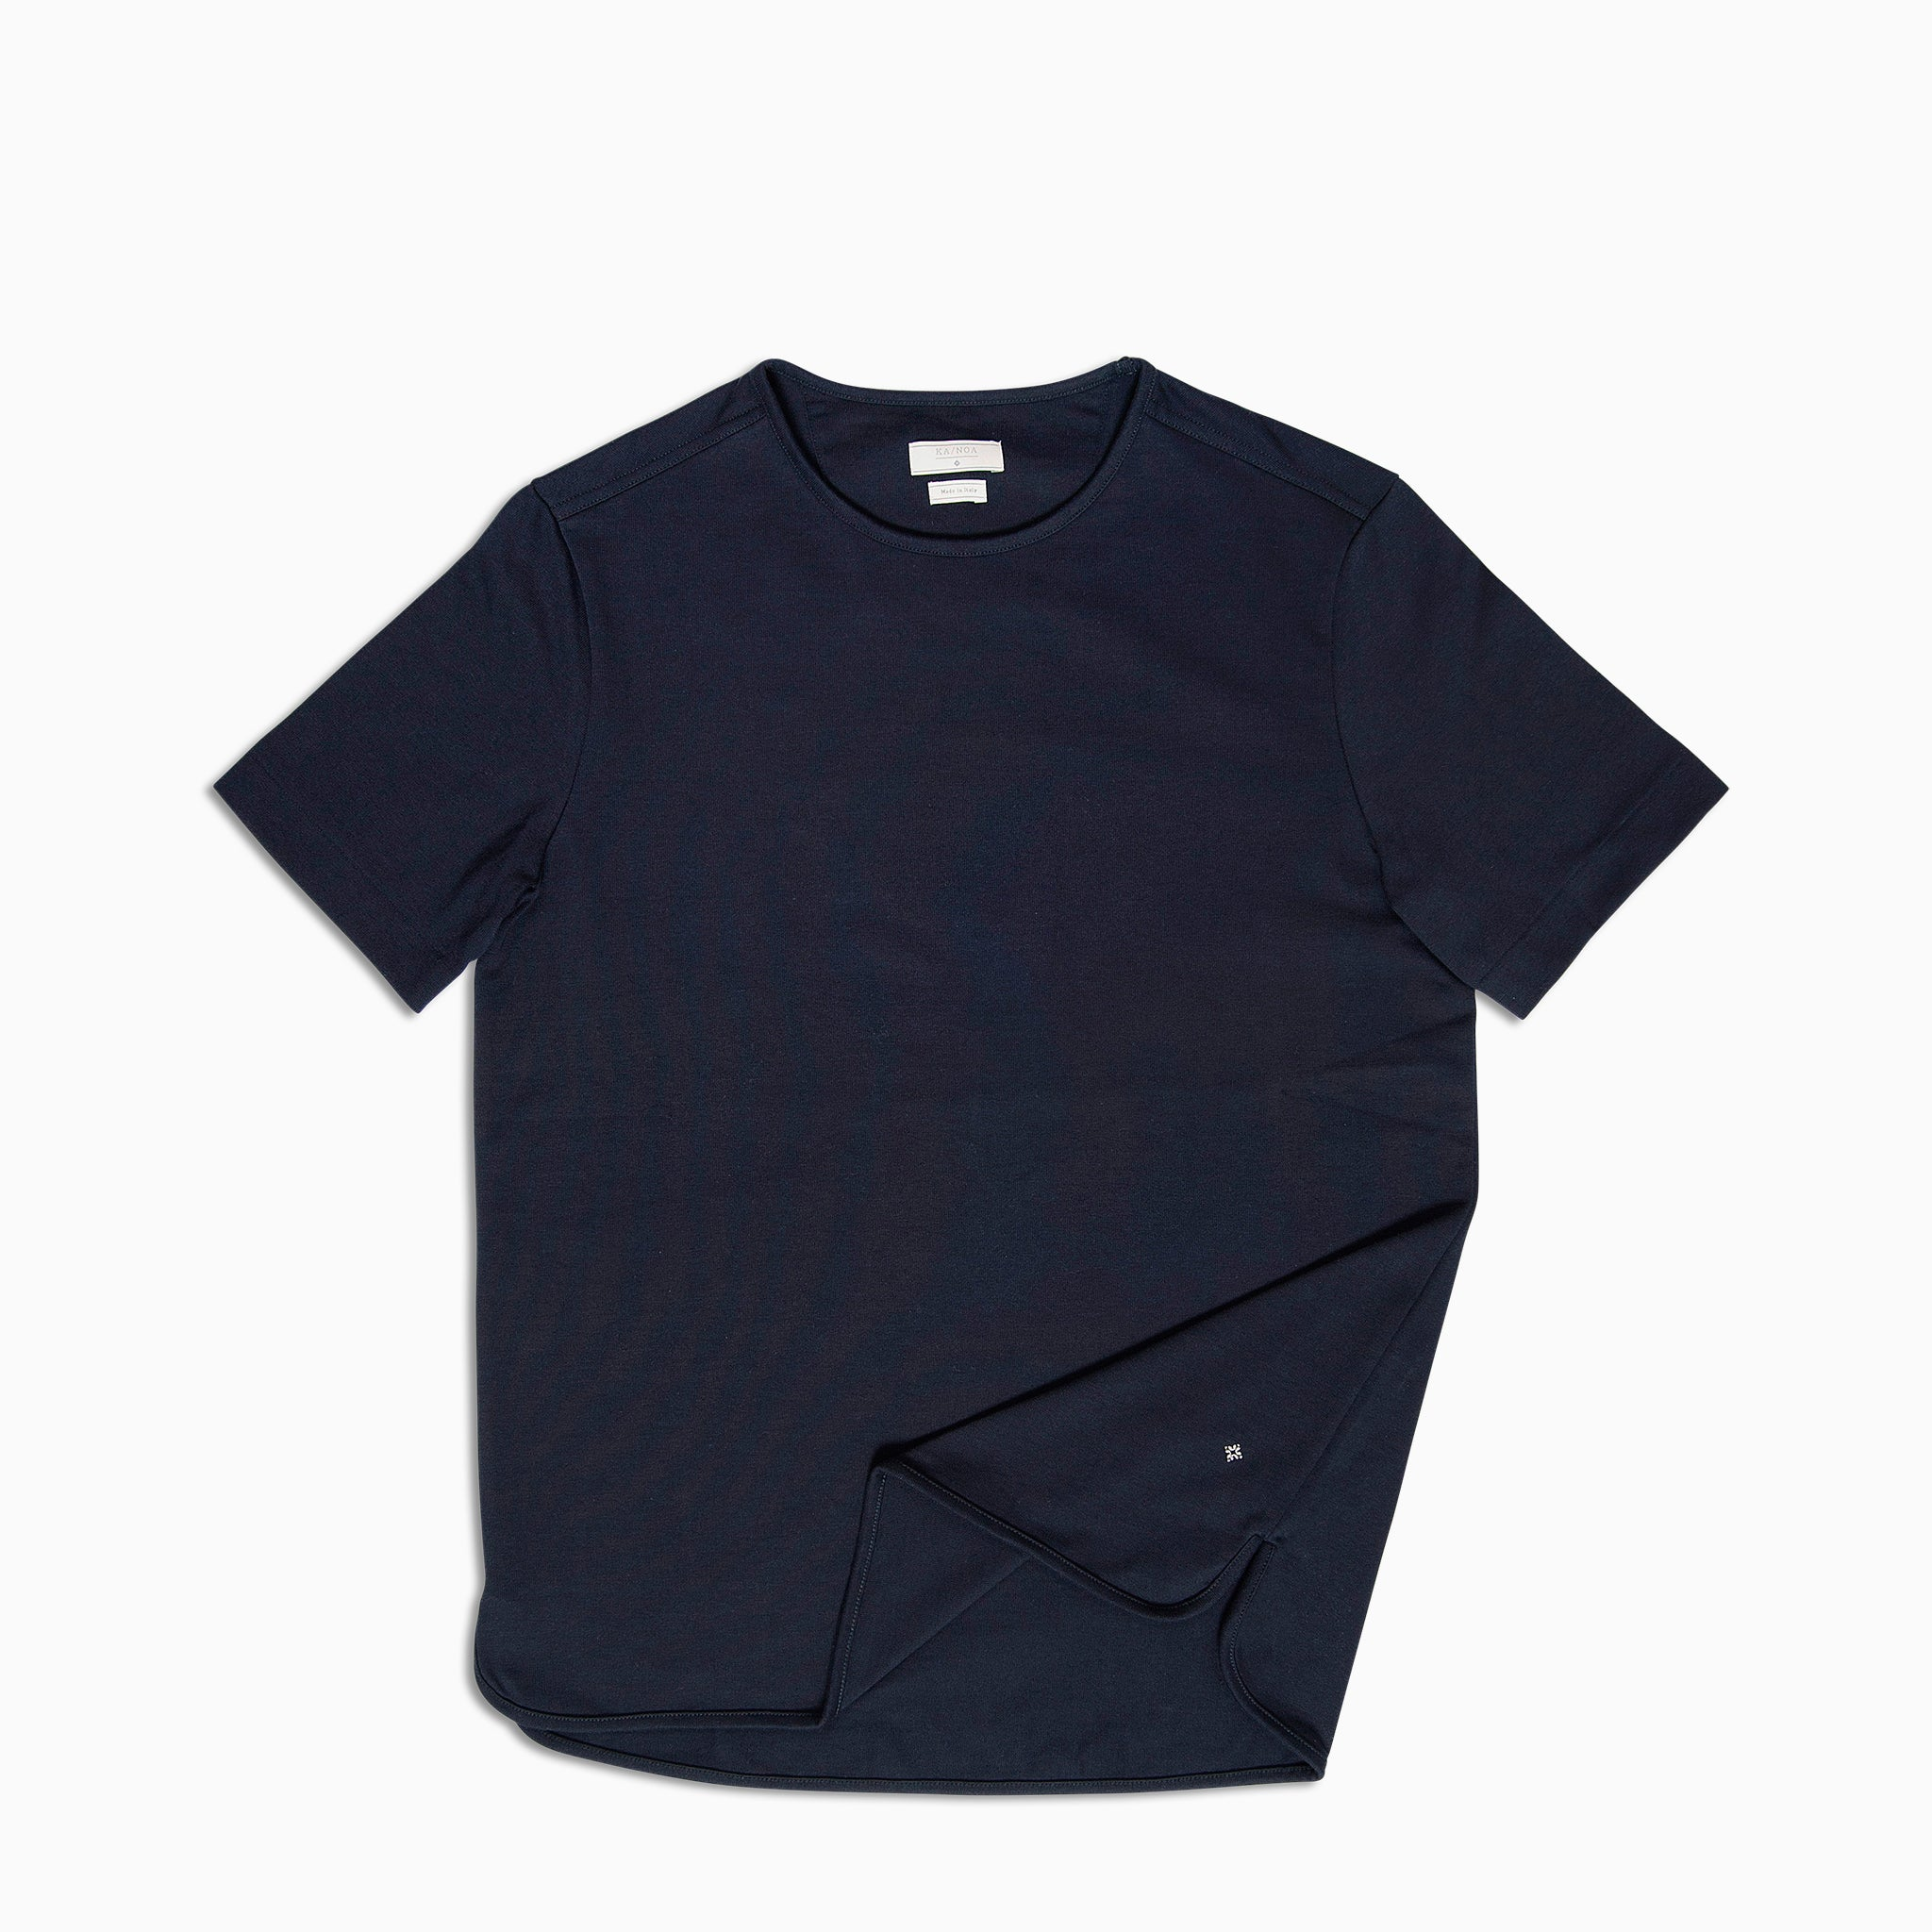 Alaric t-shirt Short Sleeves (Dark Blue)